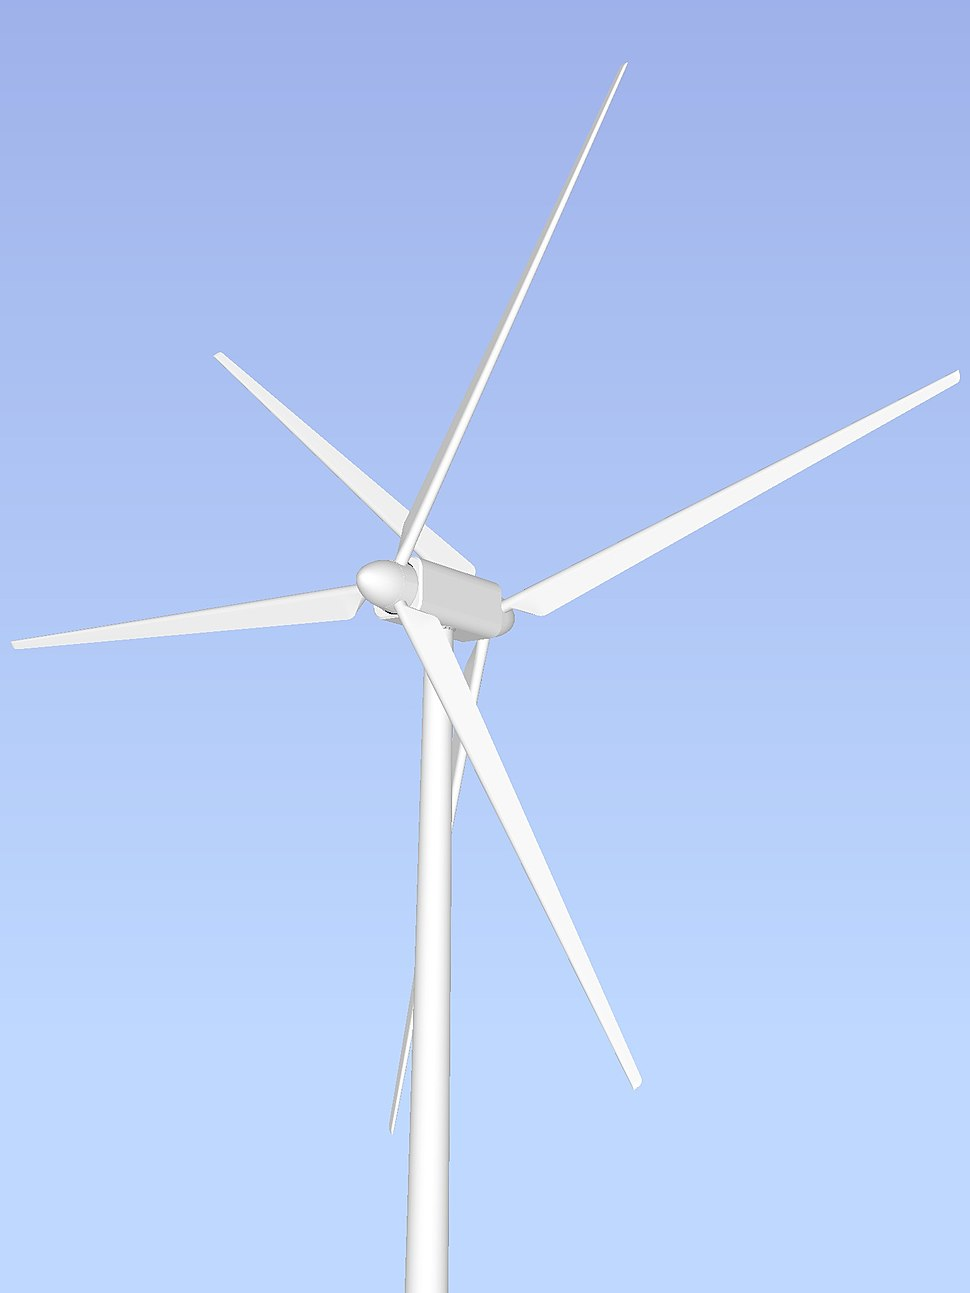 Contra rotating wind turbine.jpeg